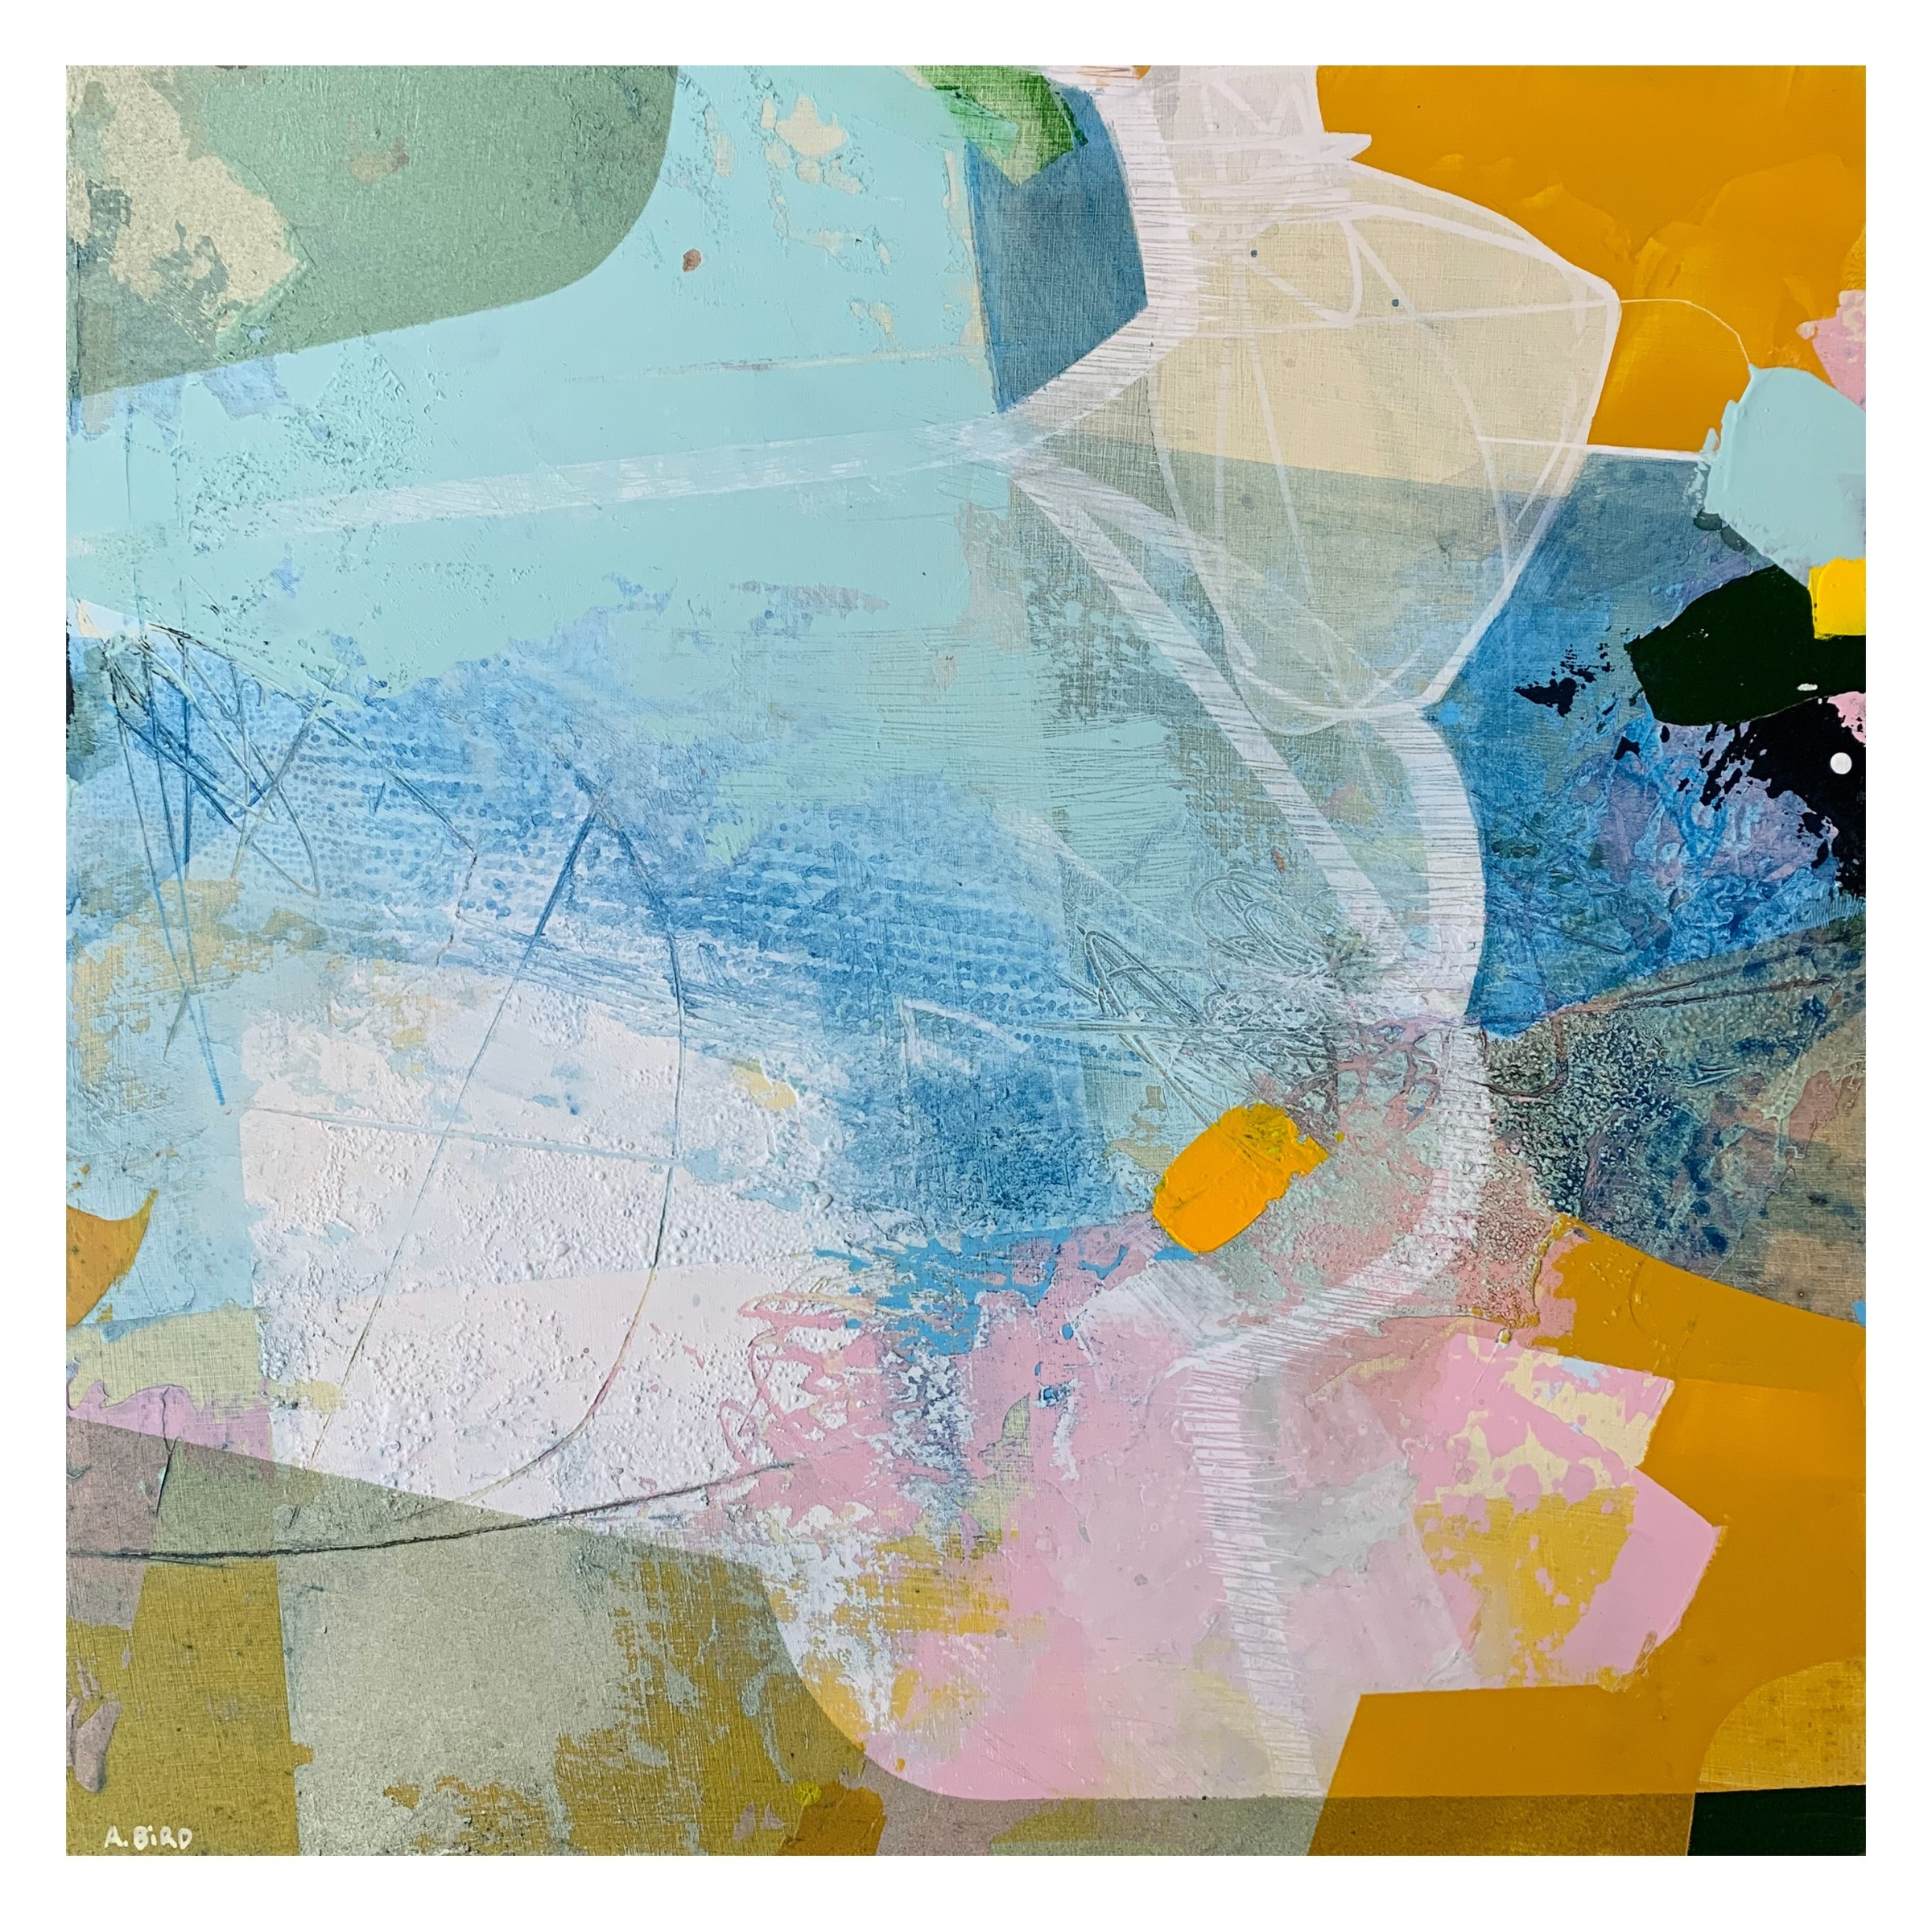 """<span class=""""link fancybox-details-link""""><a href=""""/artists/77-andrew-bird/works/7024-andrew-bird-small-cove-2020/"""">View Detail Page</a></span><div class=""""artist""""><strong>Andrew Bird</strong></div> <div class=""""title""""><em>Small Cove</em>, 2020</div> <div class=""""signed_and_dated"""">signed and titled on reverse</div> <div class=""""medium"""">acrylic on board</div> <div class=""""dimensions"""">h. 32 x w. 32 cm</div><div class=""""price"""">£925.00</div><div class=""""copyright_line"""">Ownart: £92.50 x 10 Months, 0% APR</div>"""